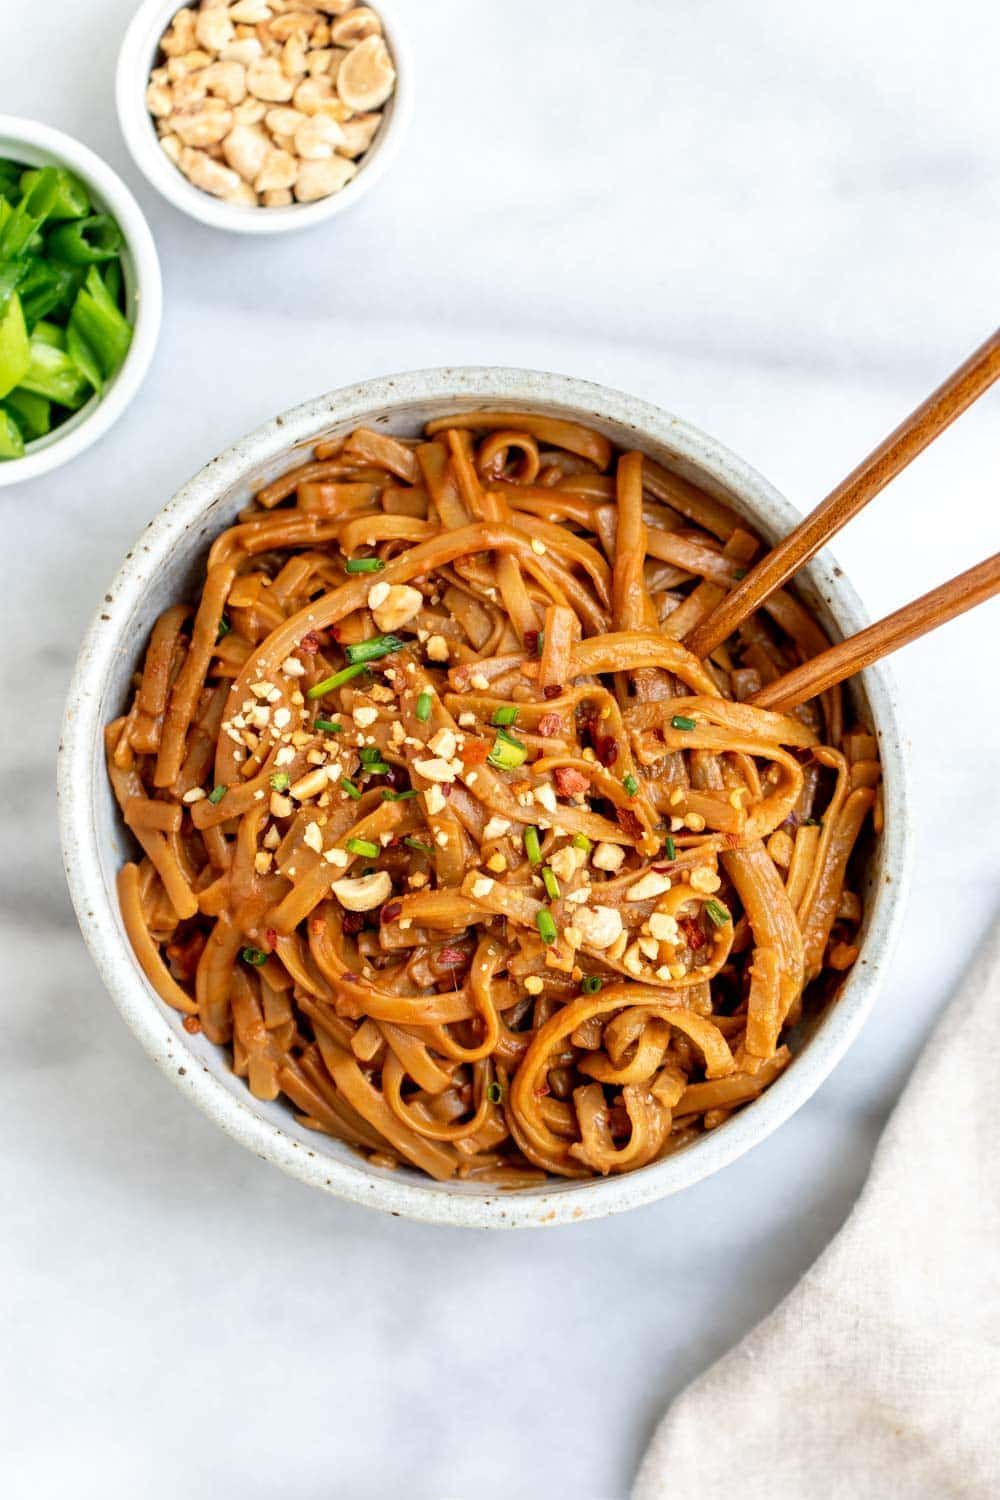 Bowl with spicy peanut butter noodles and chopsticks.